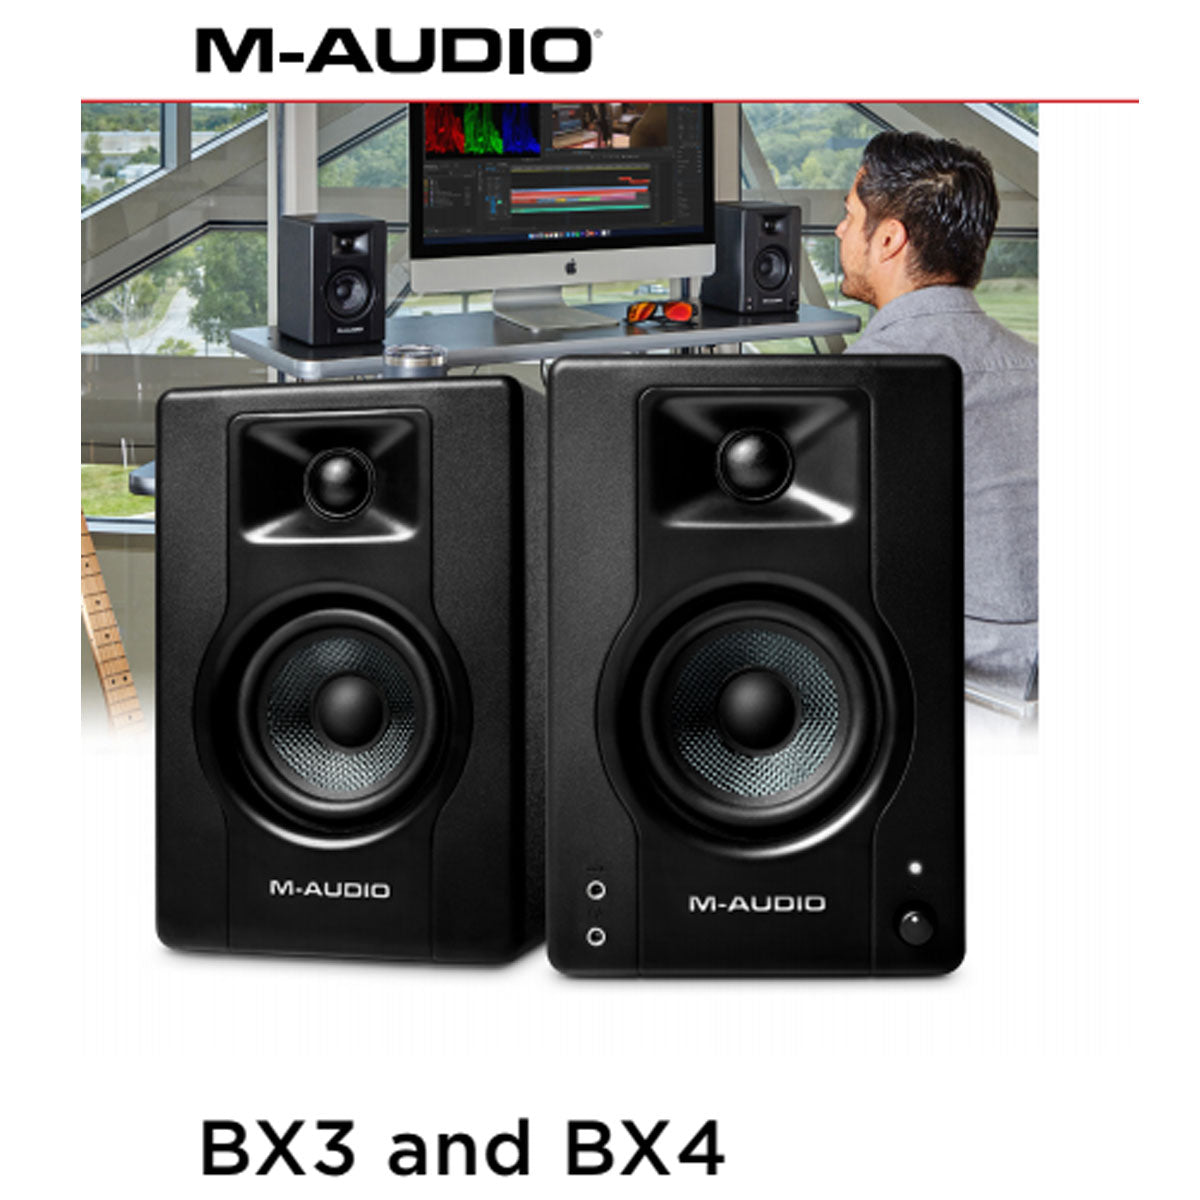 M-Audio BX4 D3 Powered Studio Monitors Speakers 4inch (Pair)